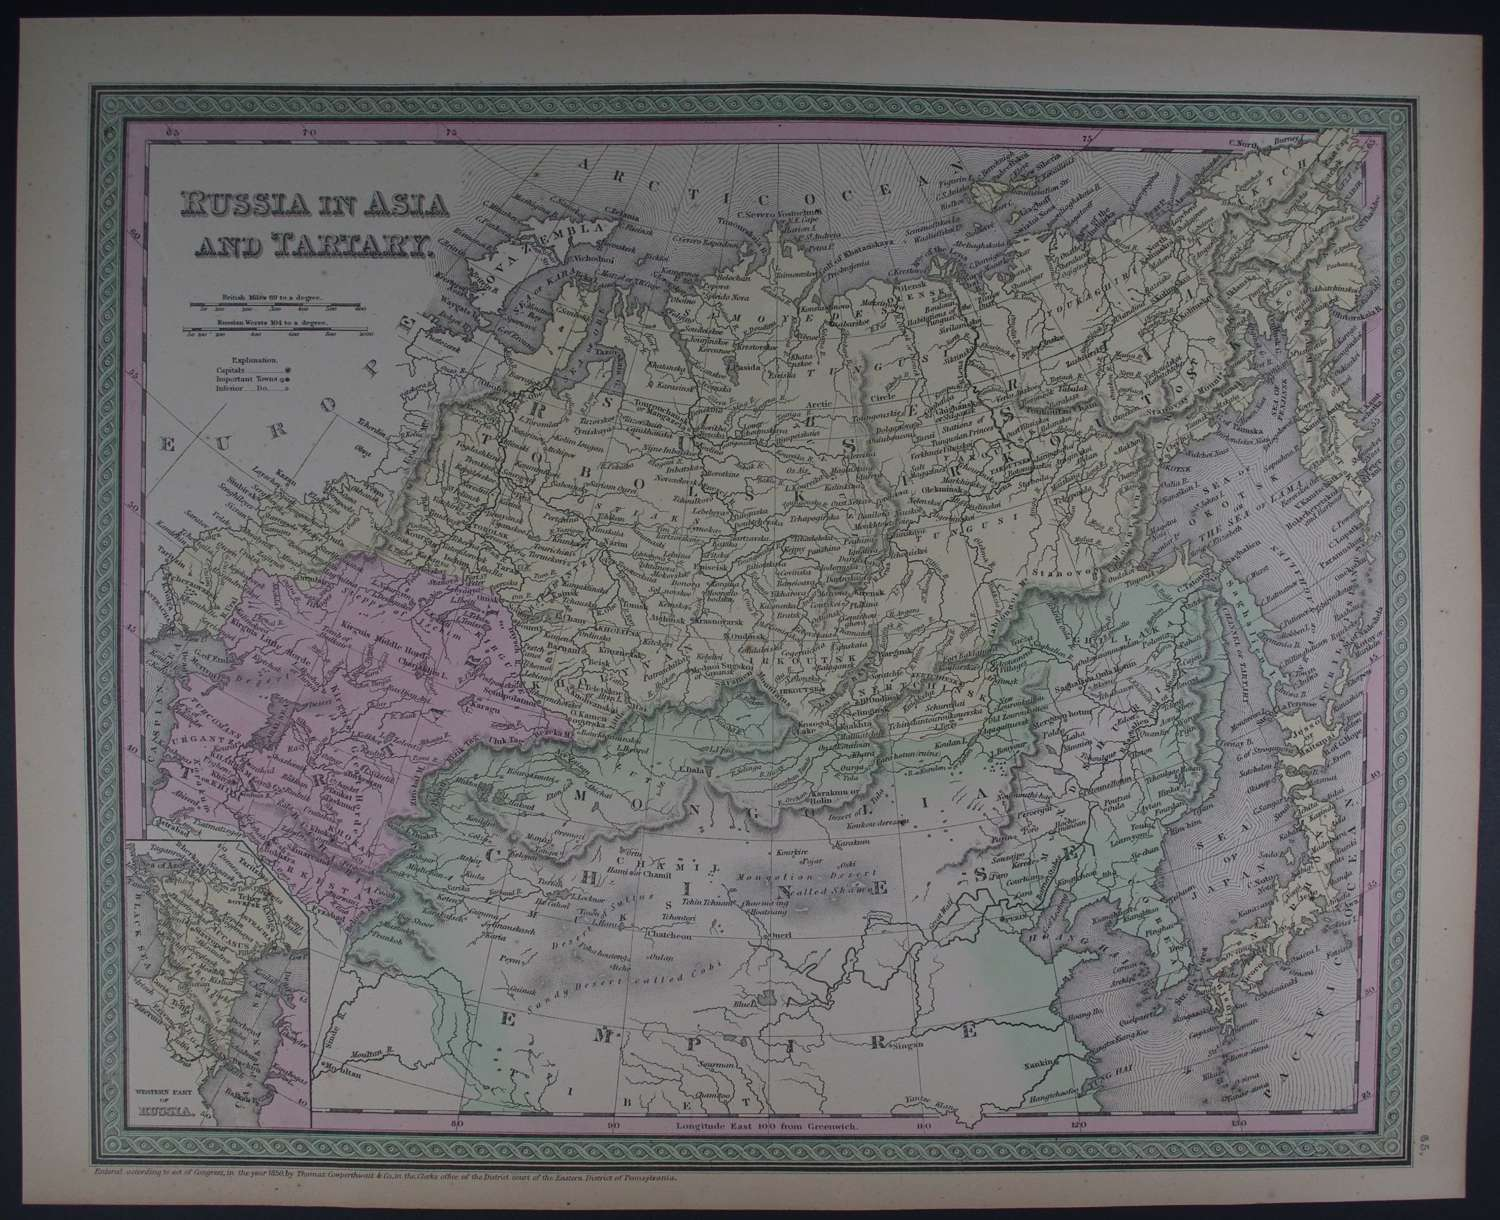 Russia in Asia and Tartary by Thomas Cowperthwait & Co